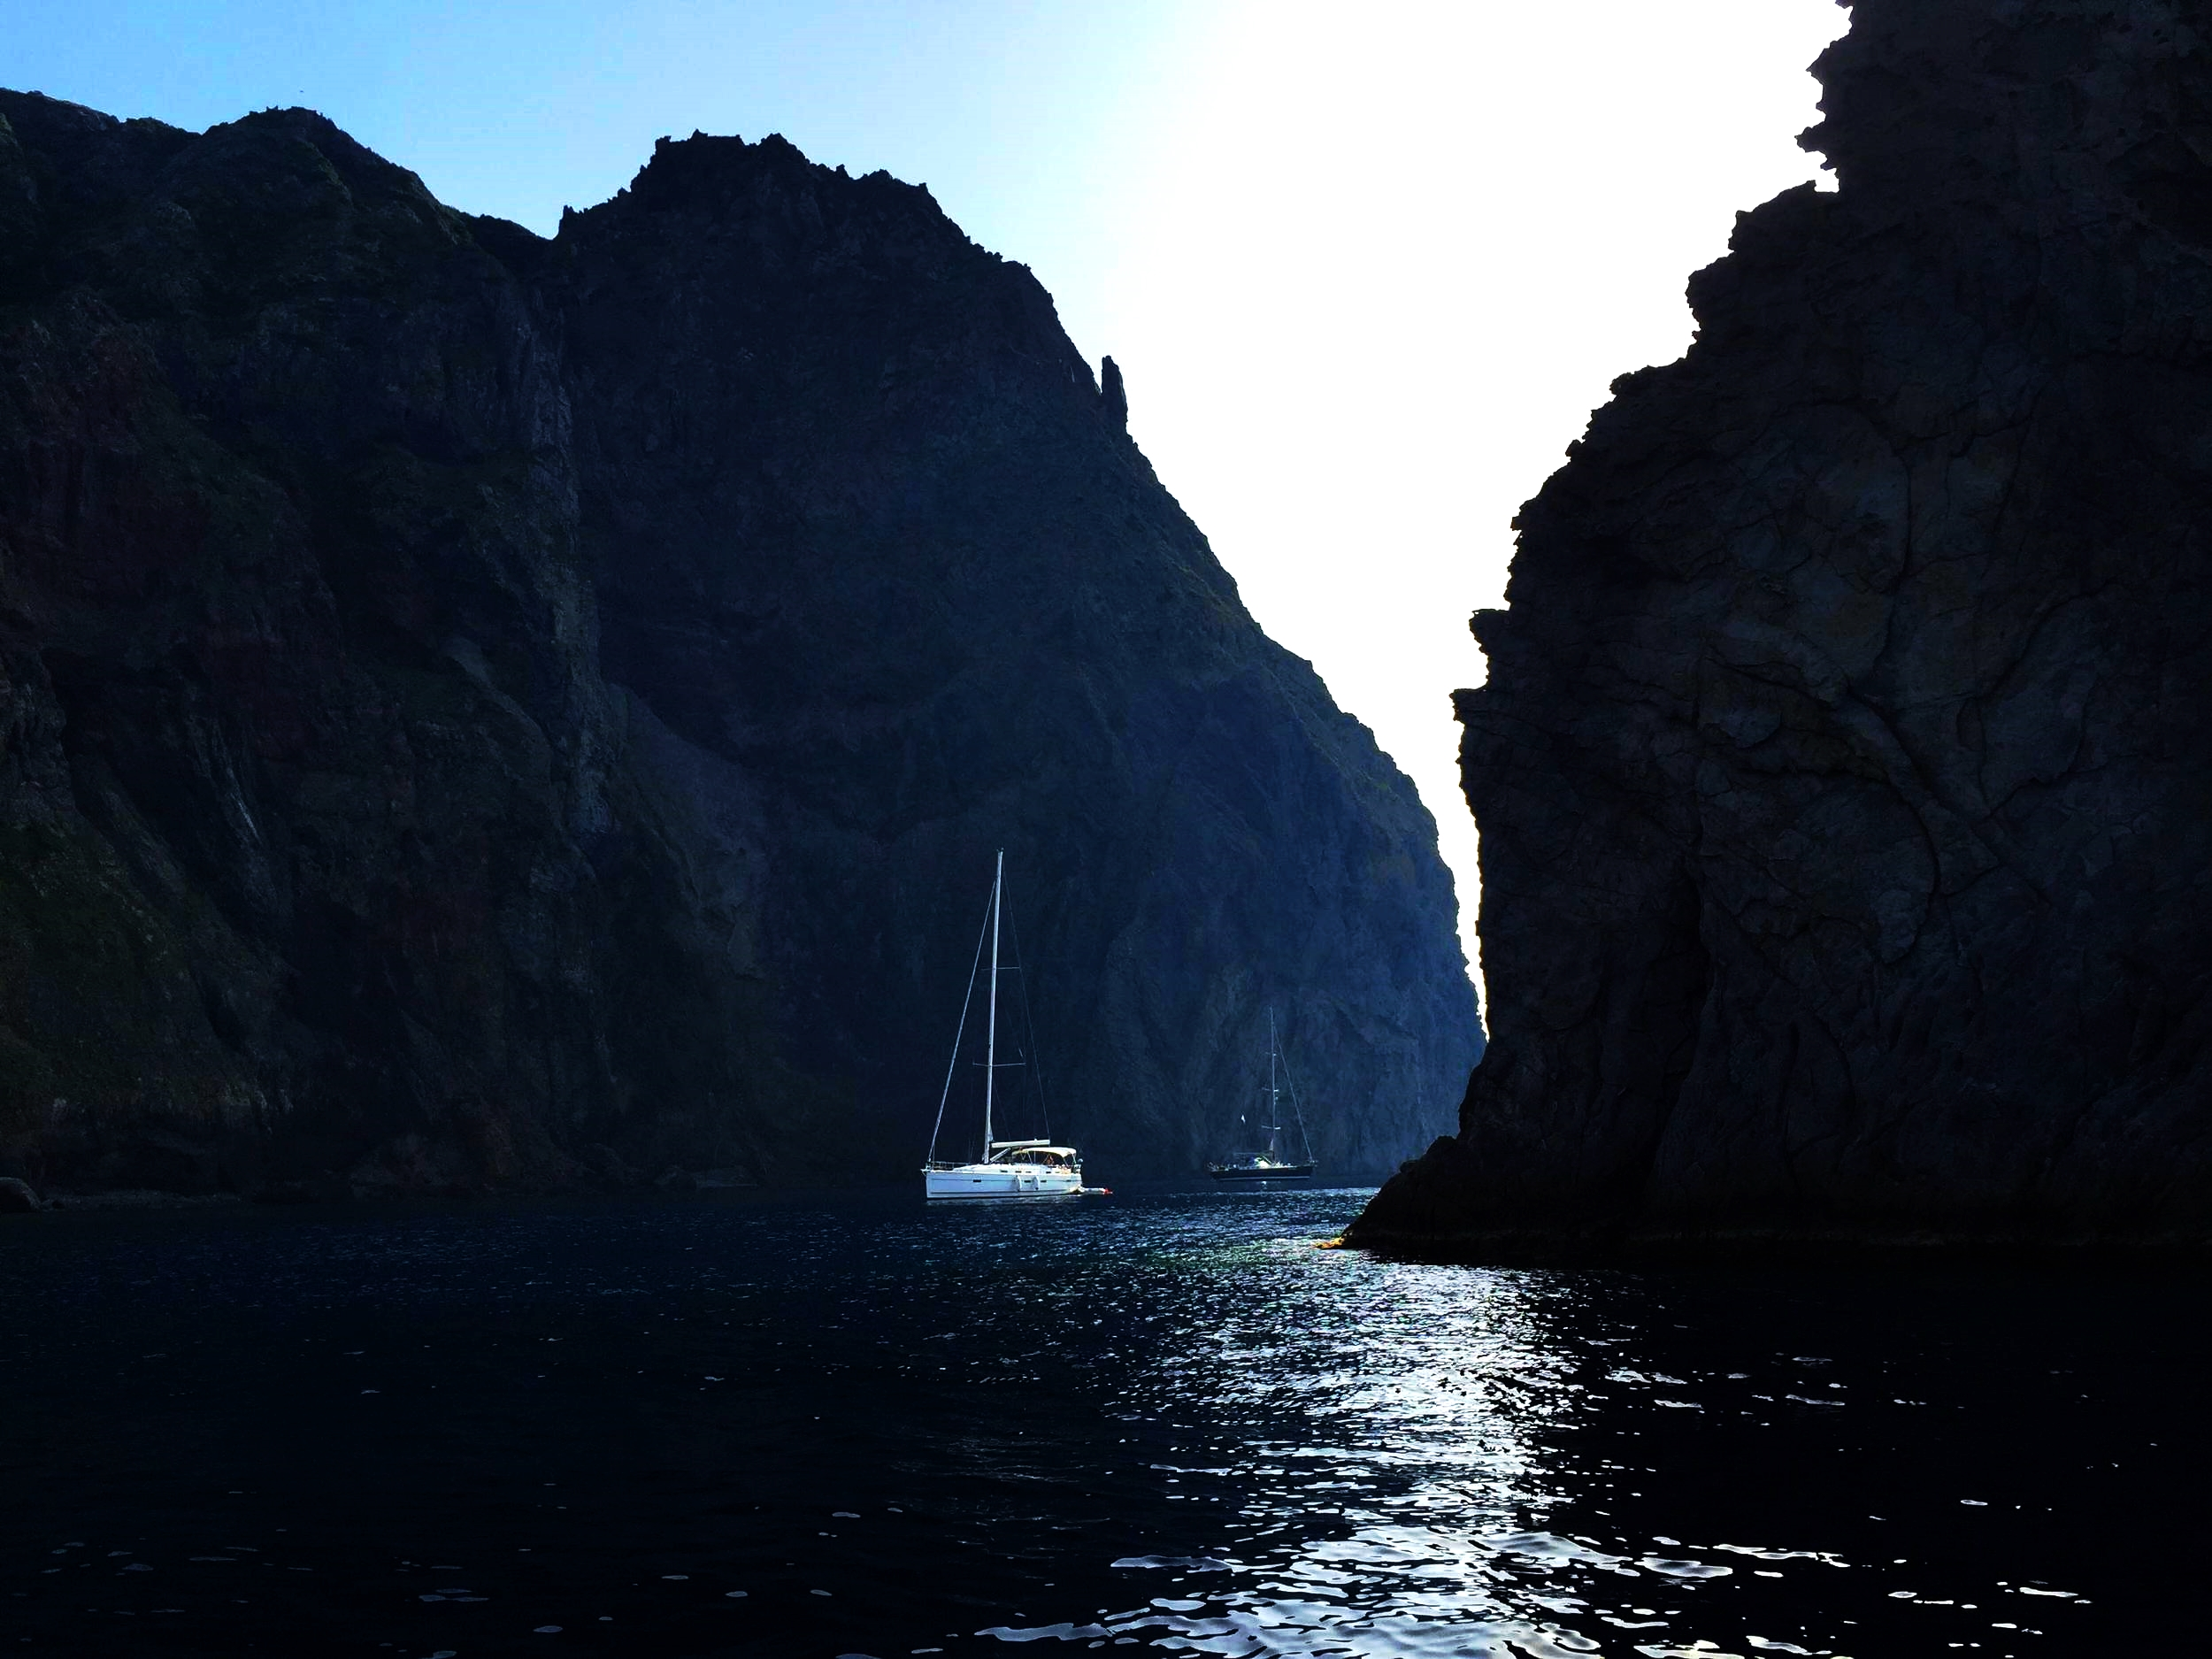 It's exhilarating to round the corner and see La Nave, at one end of Panarea. While the light goes down, the sea and land change colors. Just make sure to get home in time for your nightly aperitif!